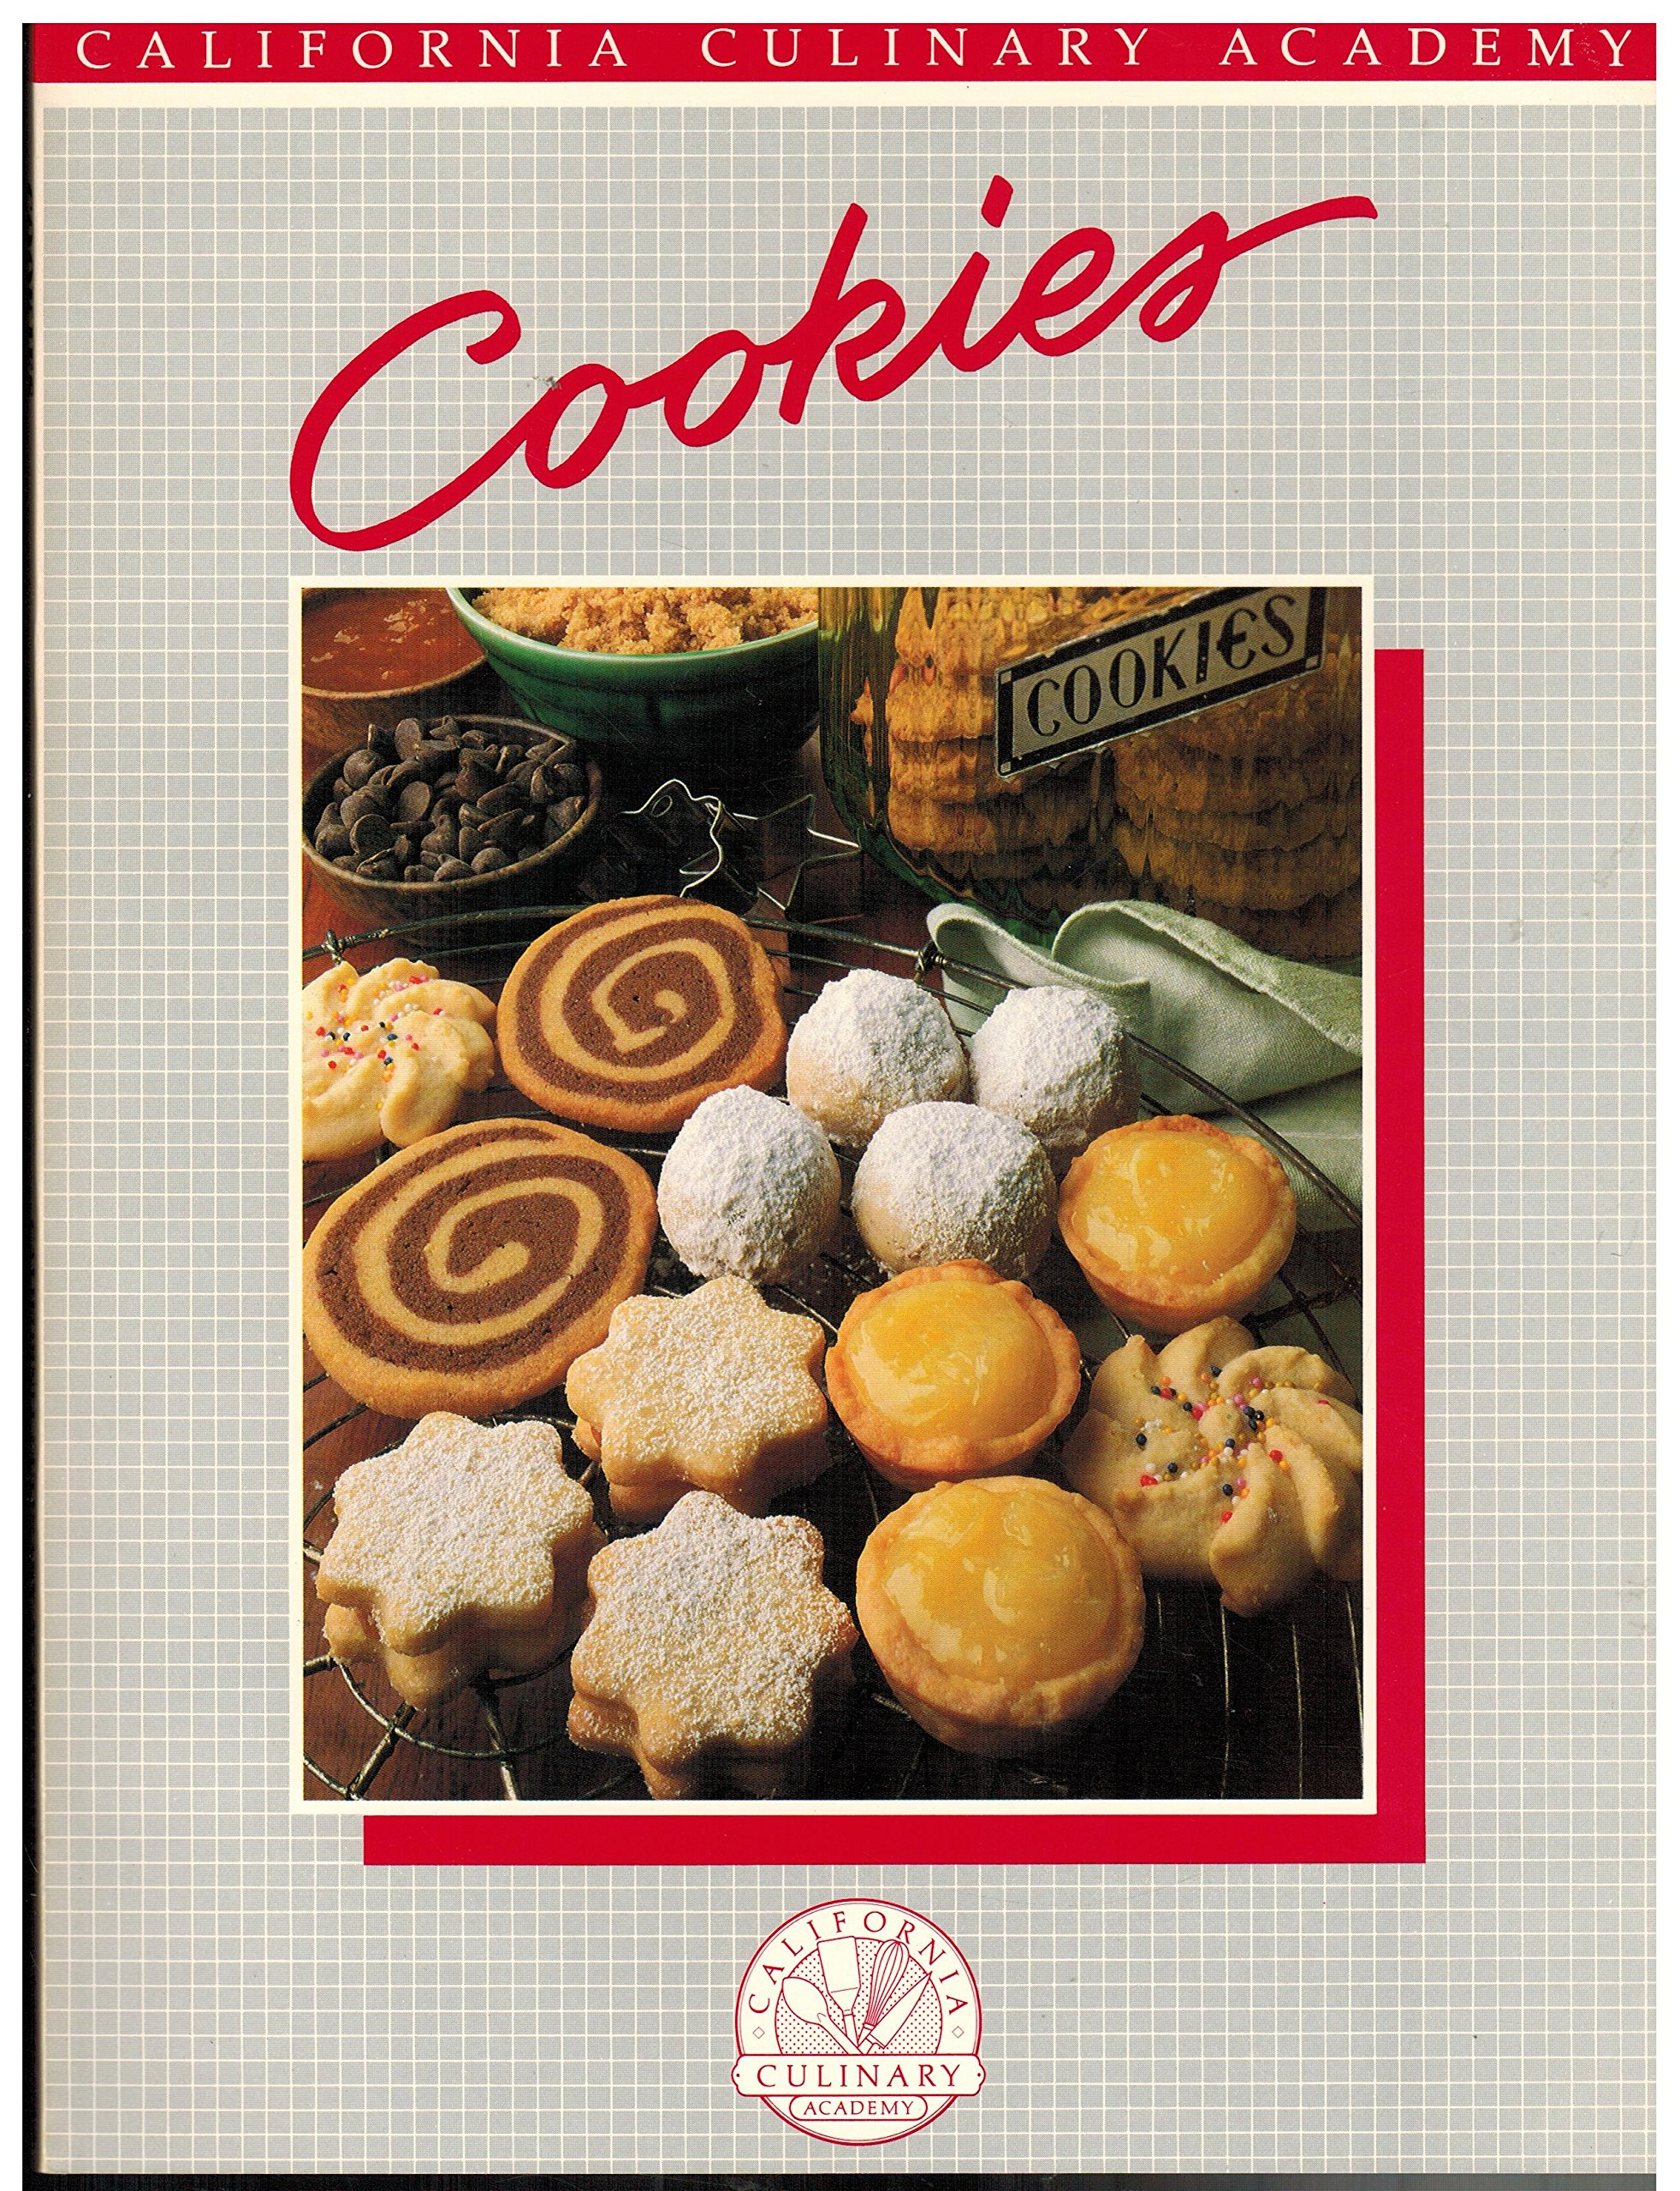 Cookies (California Culinary Academy series): Cynthia Scheer